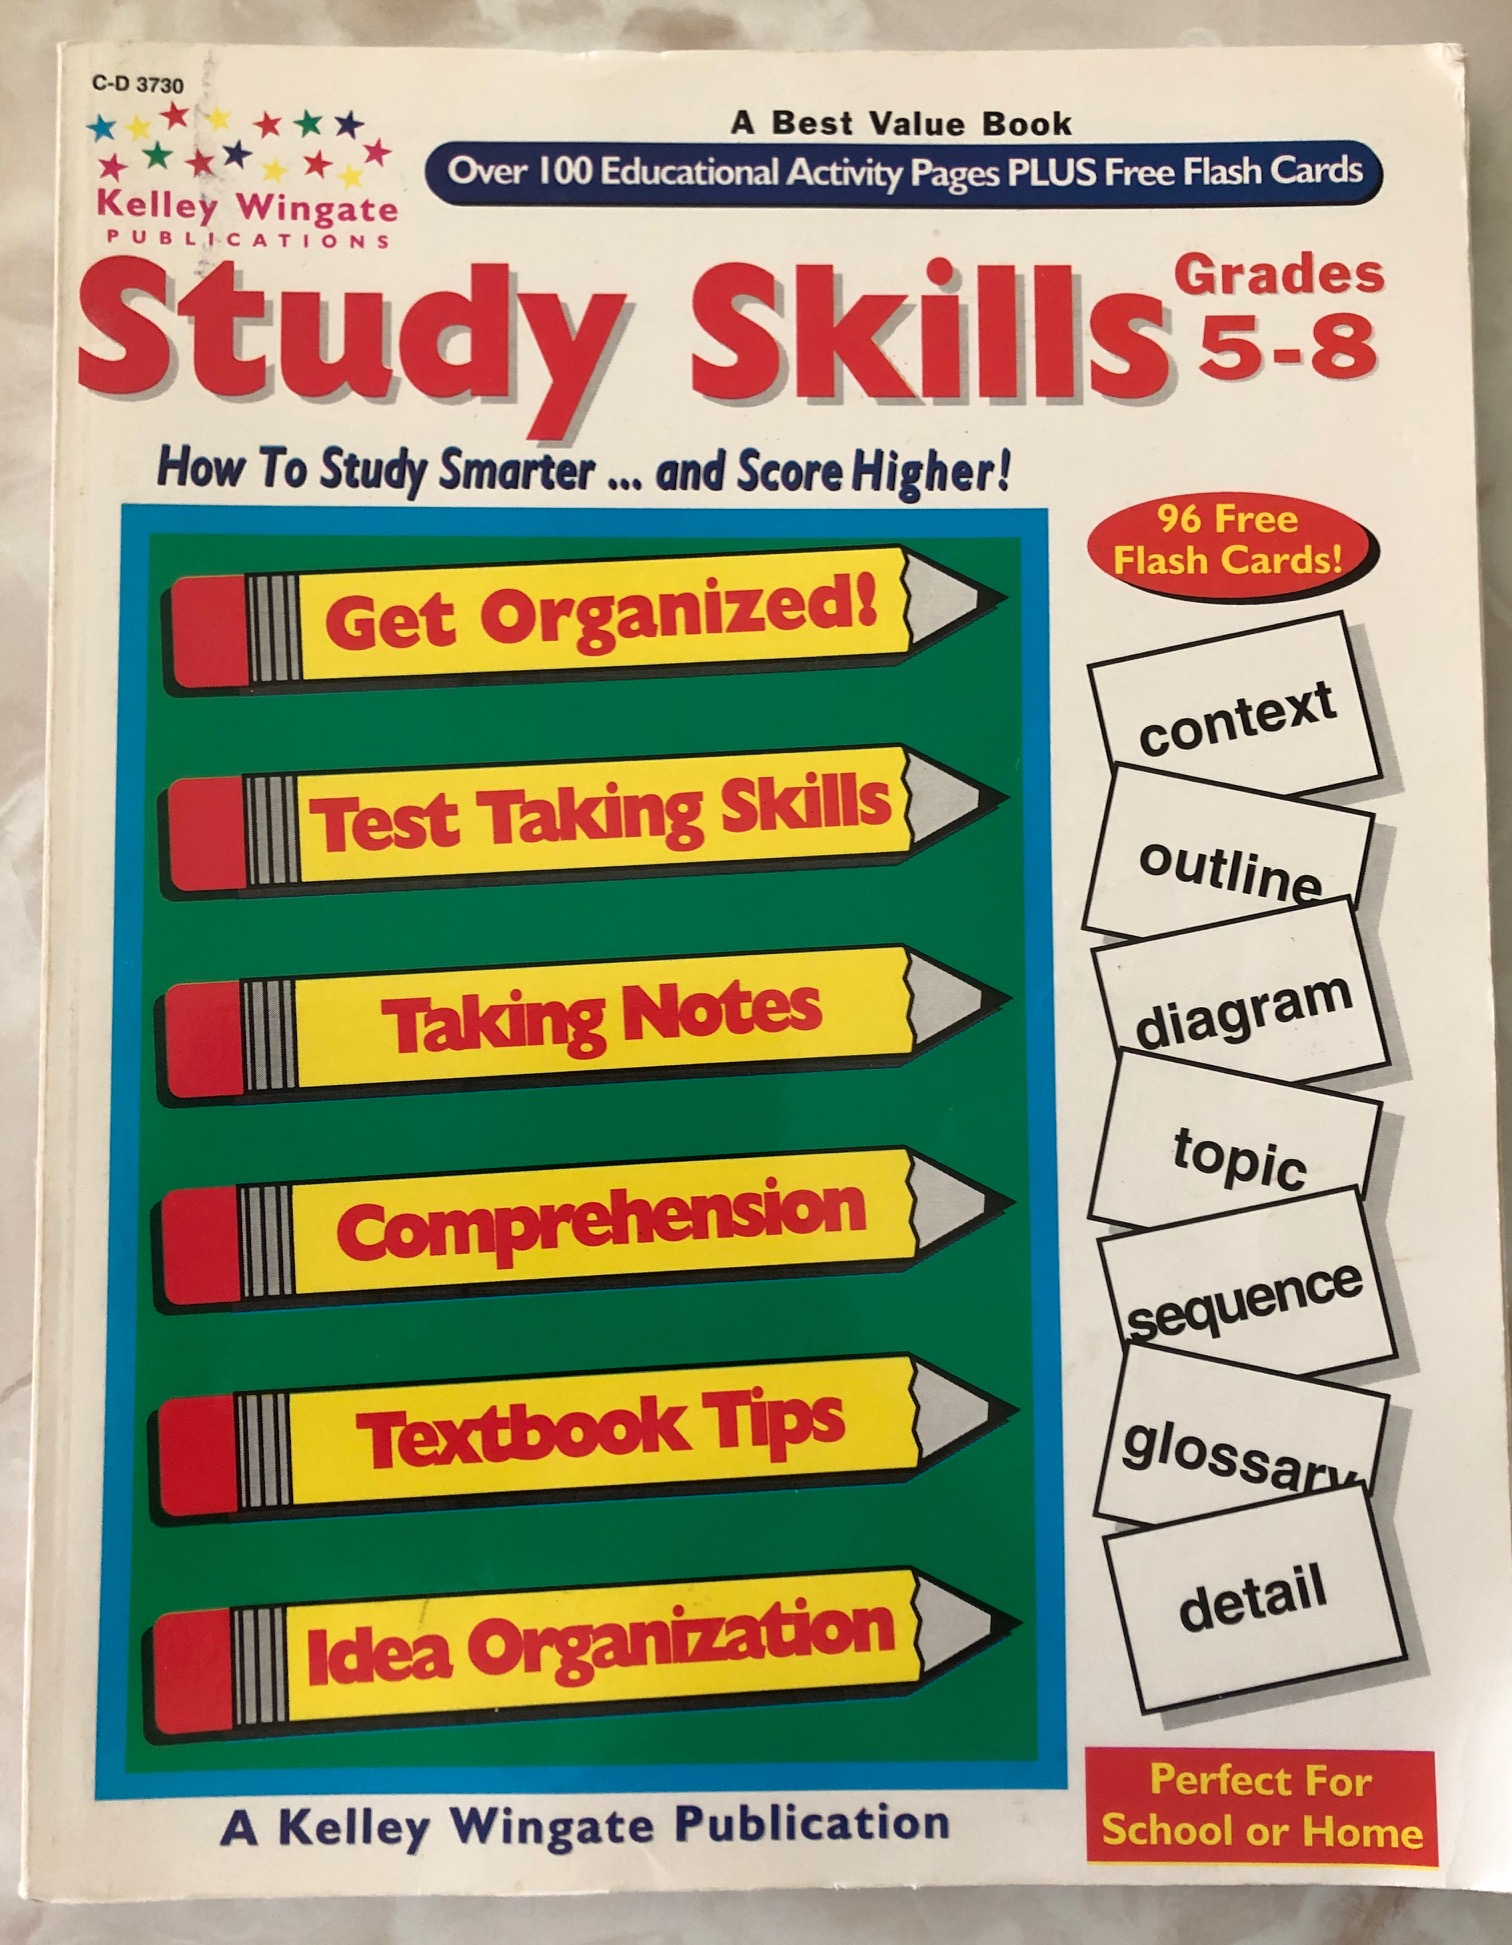 Study Skills books - two together, Grs. K-8 -- $14 ppd. Good. ISBN  0887244483 [more] limkefamily91 01/09